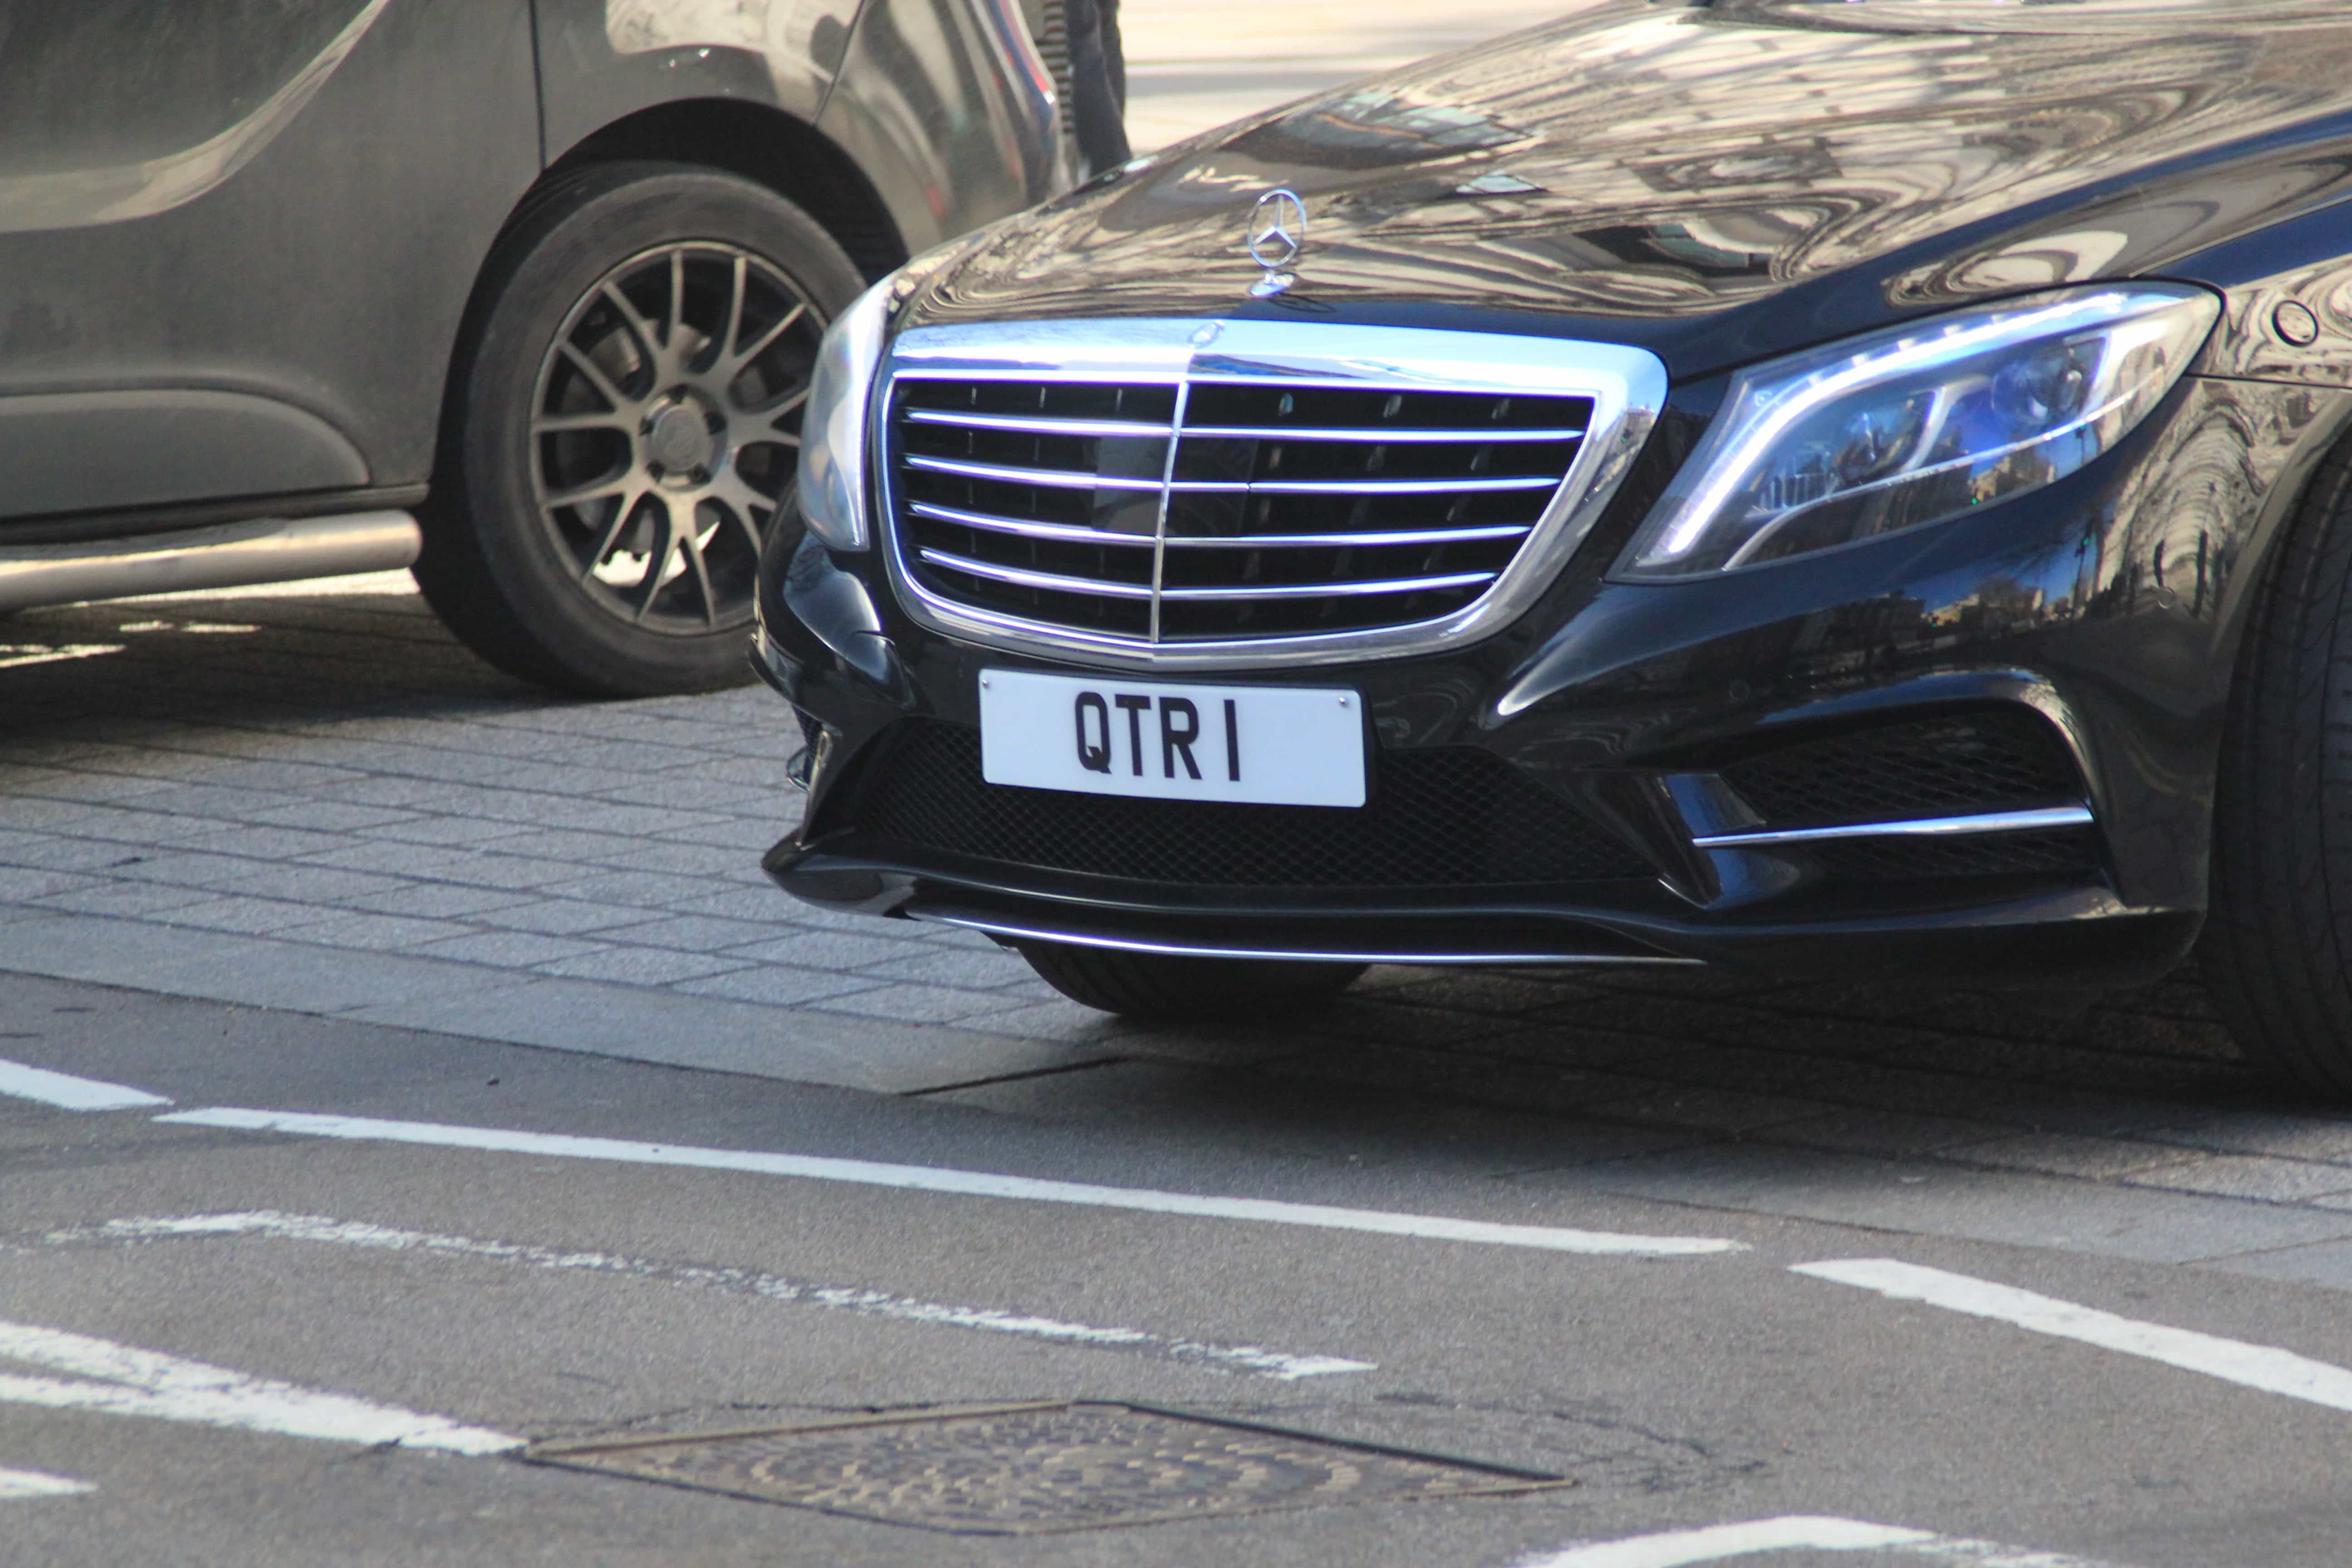 Private style number plate on car.